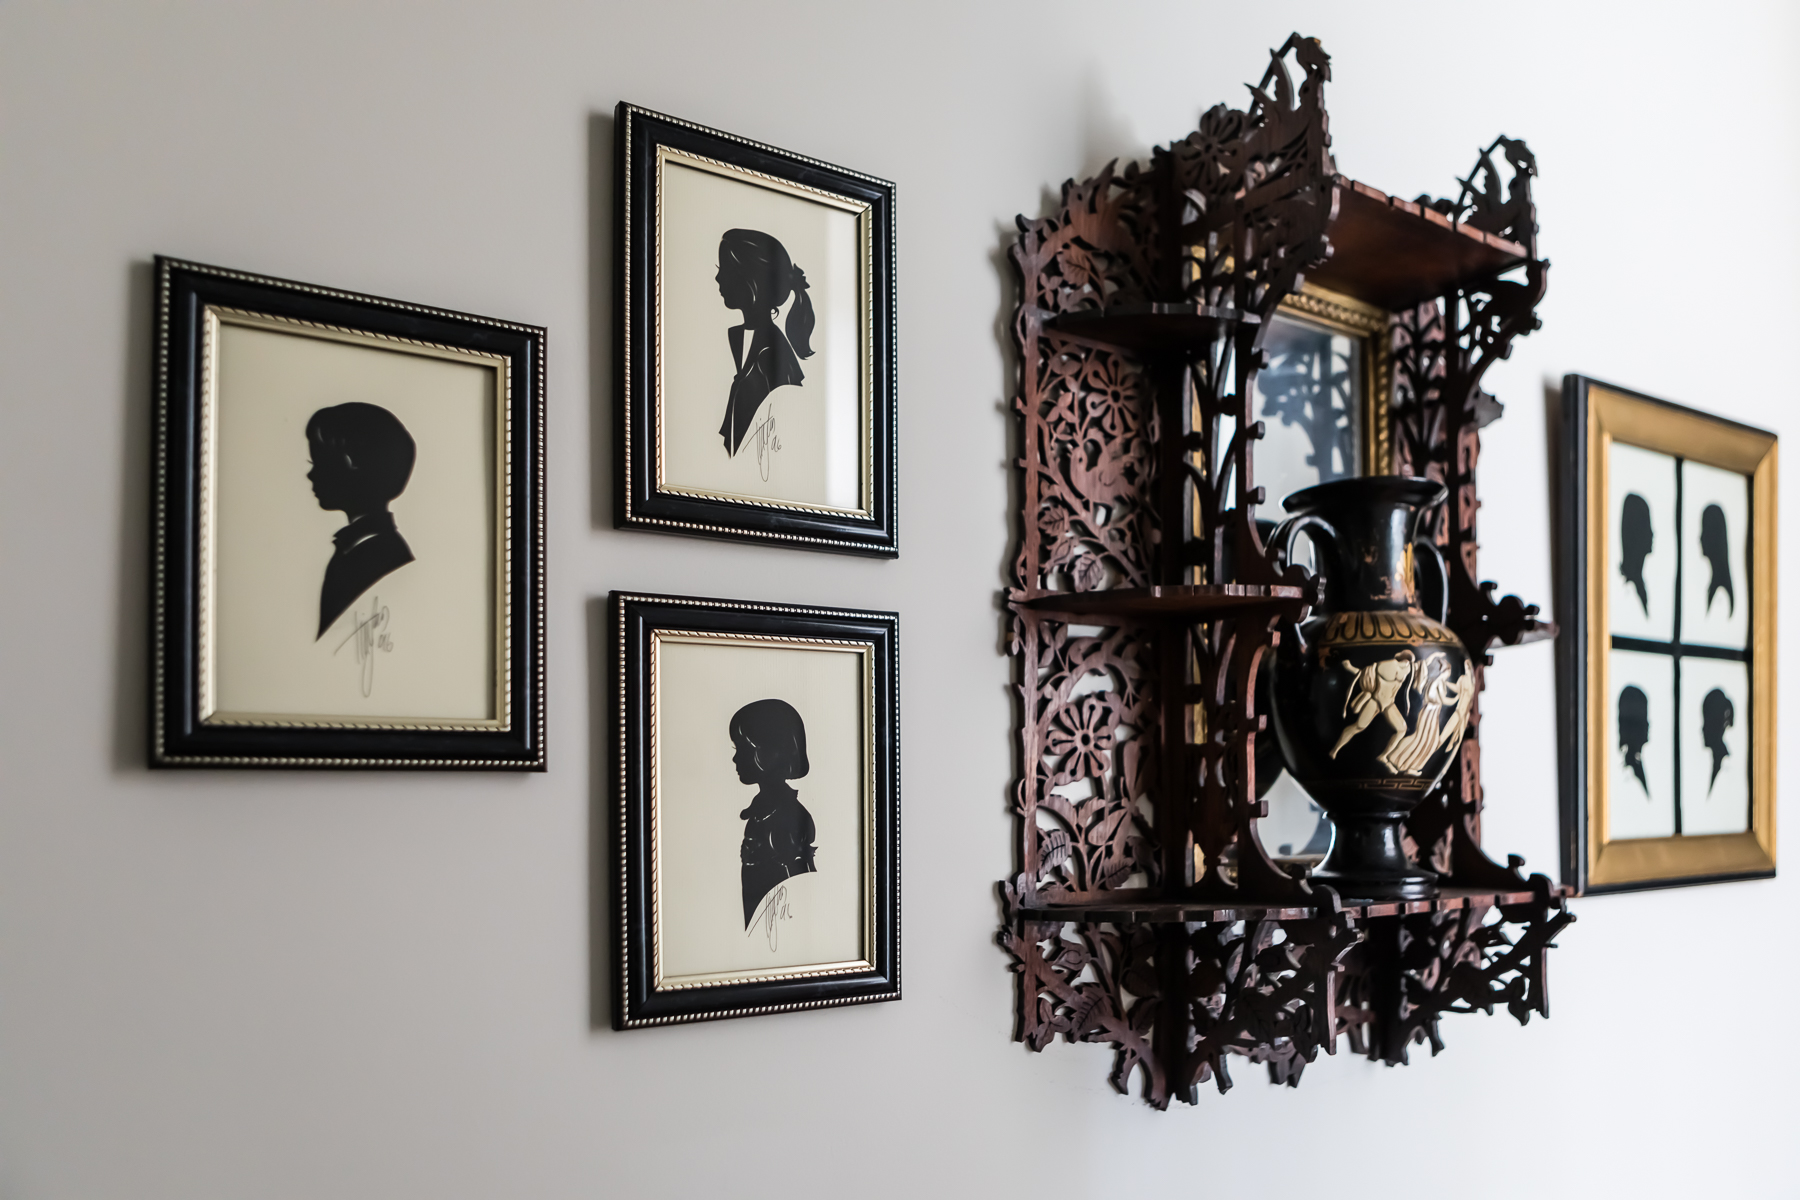 Antique Silhouettes Wall Art Display